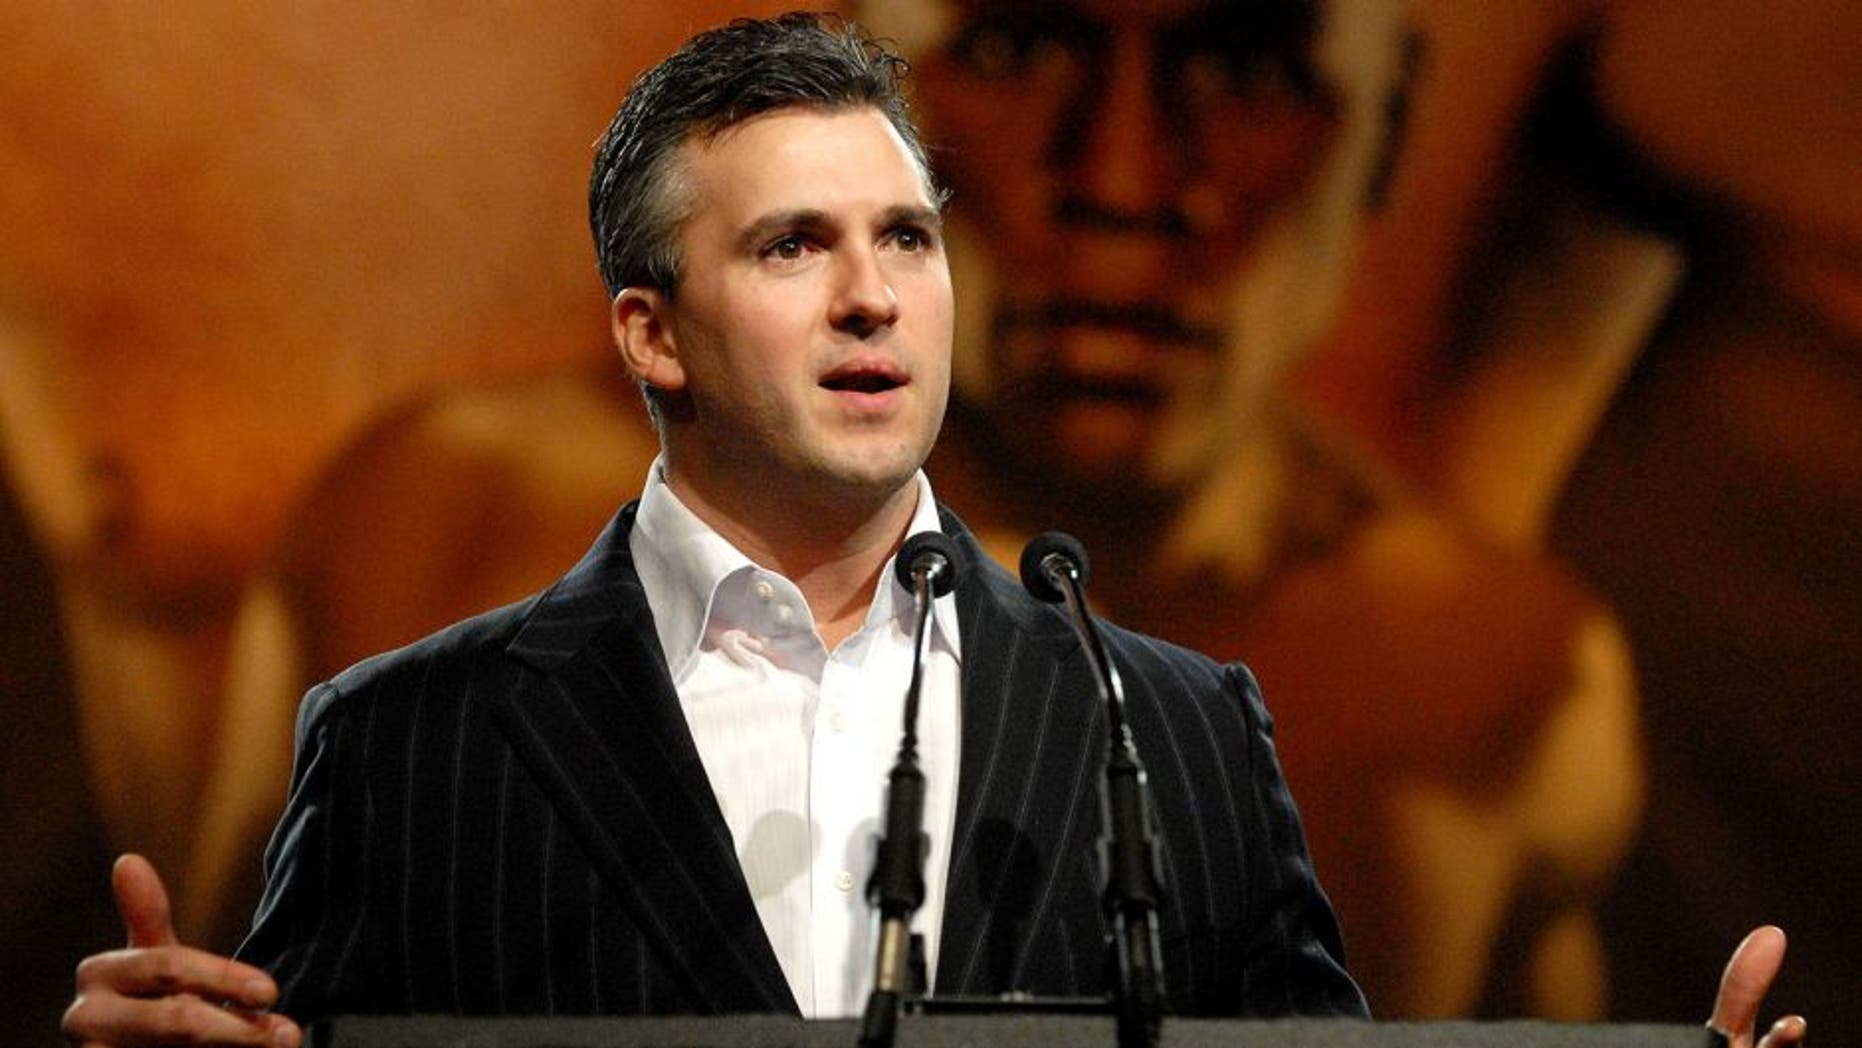 NEW YORK - MARCH 26: Shane McMahon speaks at a press conference for WrestleMania XXIV on March 26, 2008 at the Hard Rock Cafe in New York City. (Photo by Rob Loud/Getty Images)